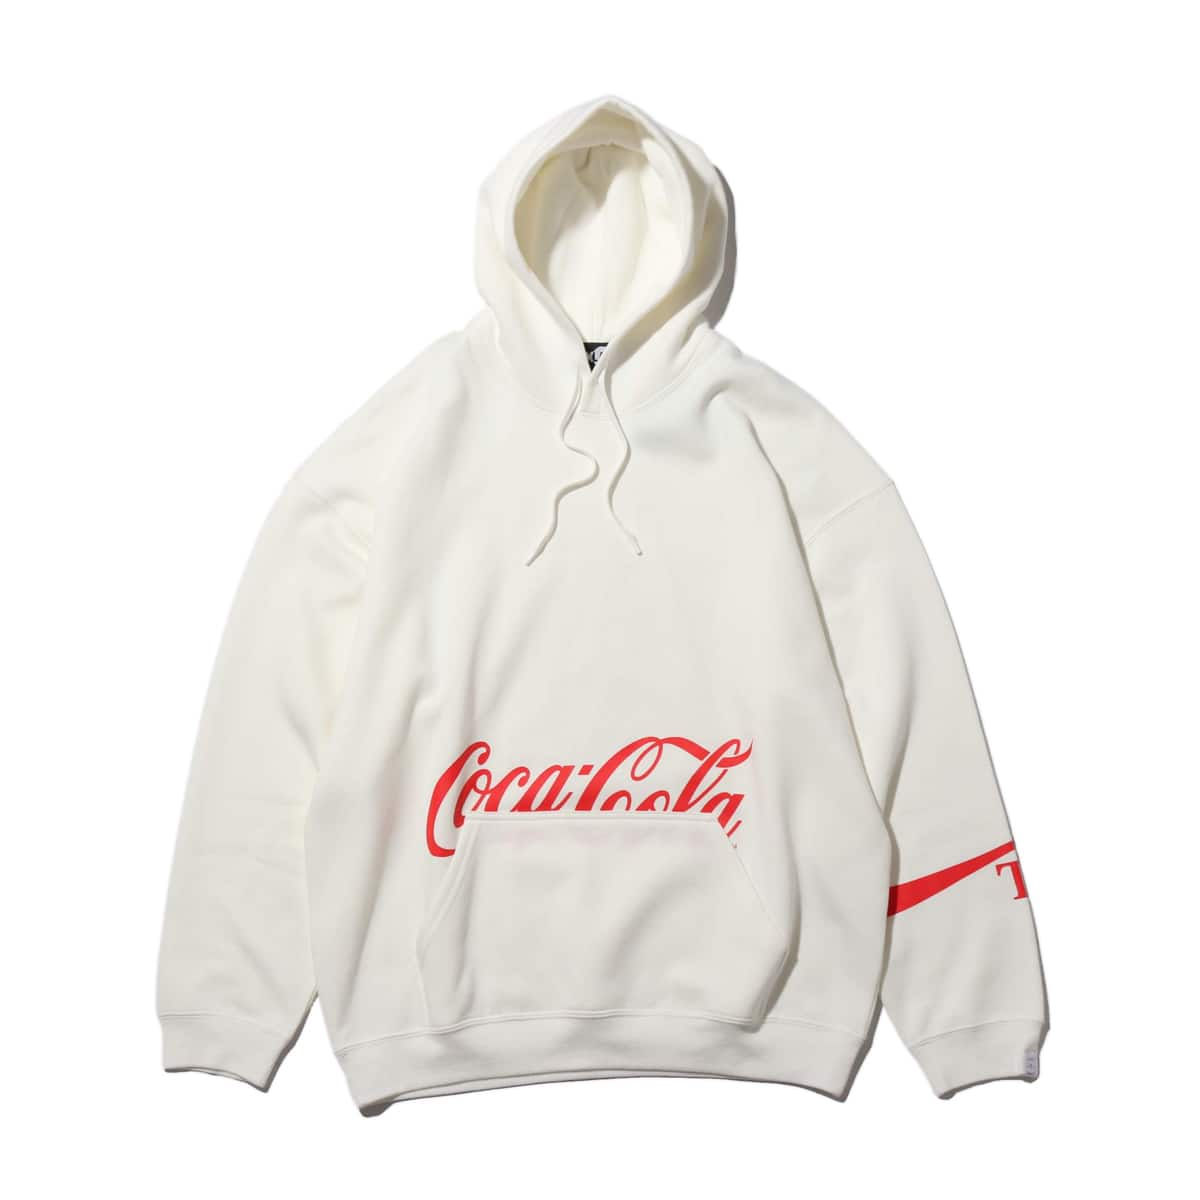 COCA-COLA by ATMOS LAB PANEL PHOTO HOODIE WHITE 19FA-S_photo_large